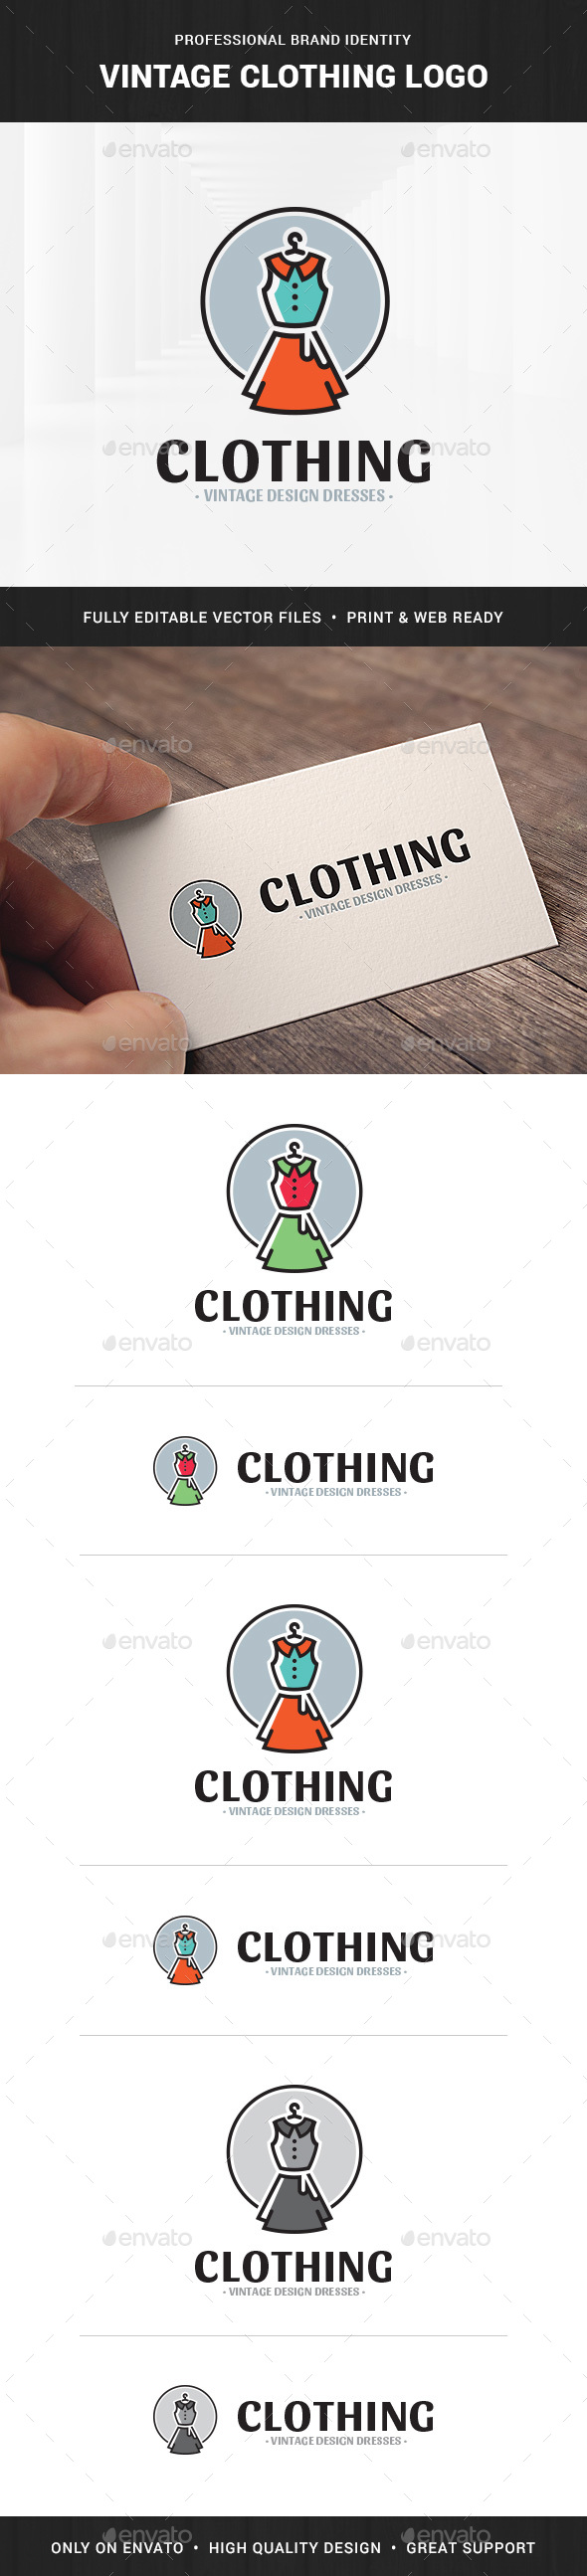 Vintage Clothing Logo Template - Objects Logo Templates